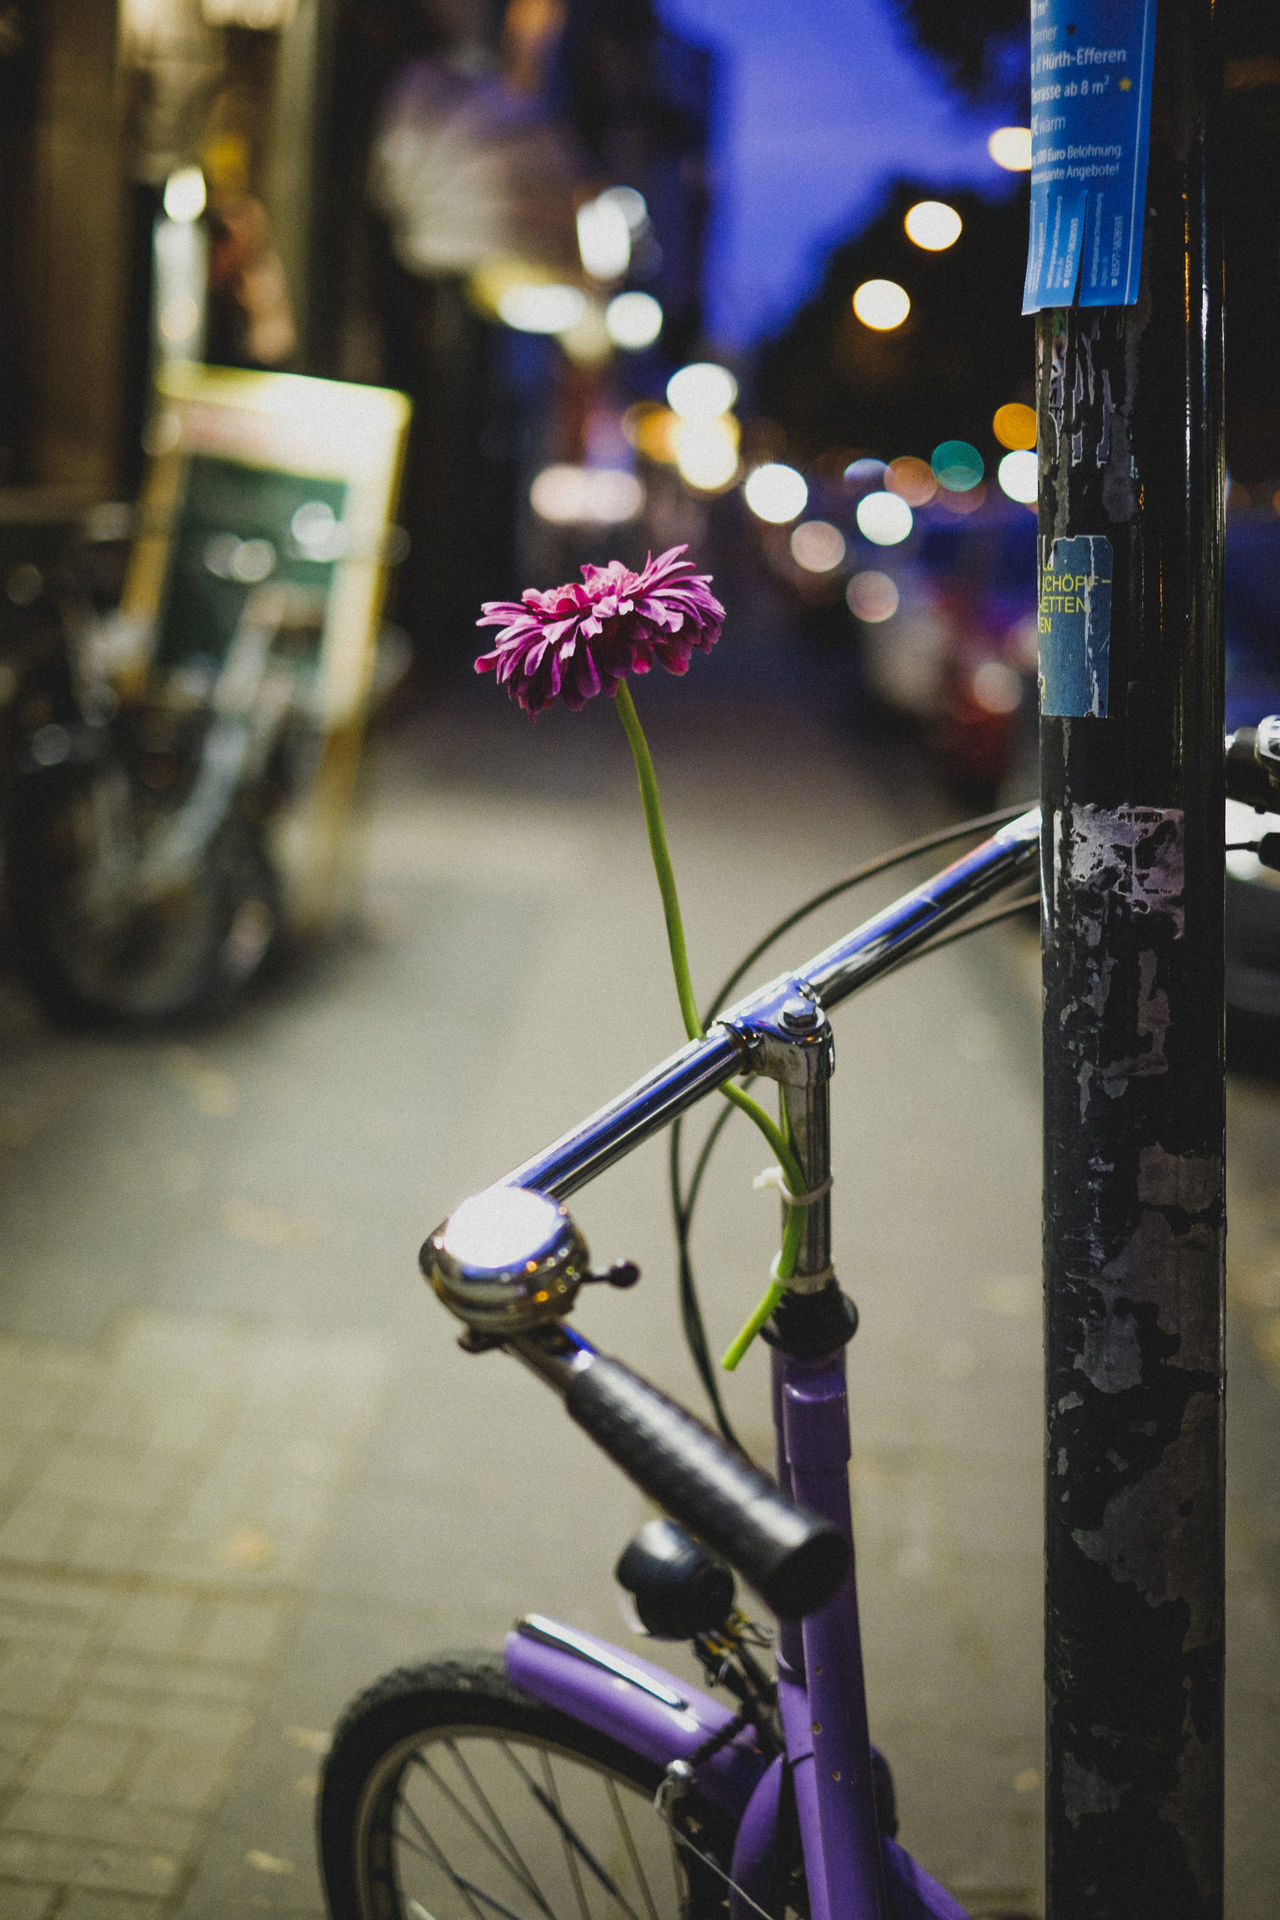 Bike Blue City City Life City Lights City Street Cityscape Cityscapes Close-up Focus On Foreground Part Of Selective Focus Stationary Cities At Night EyeEm X Huawei - Cities At Night